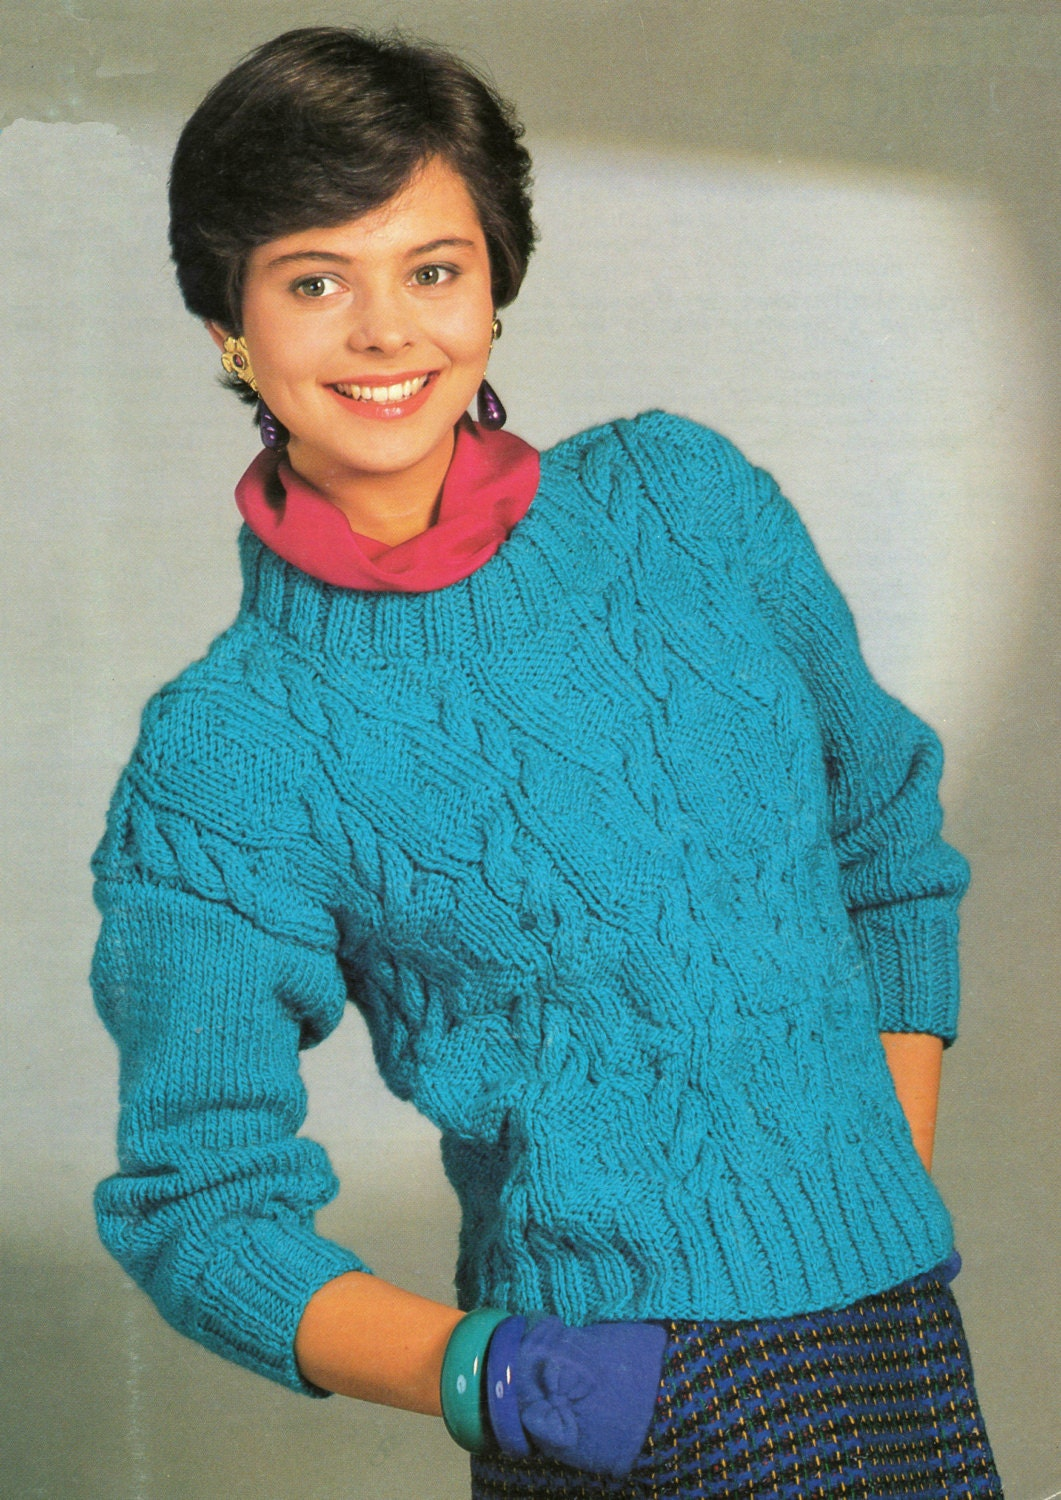 Knitting Pattern For Ladies Cable Sweater : Ladies cable knit chunky sweater knitting pattern